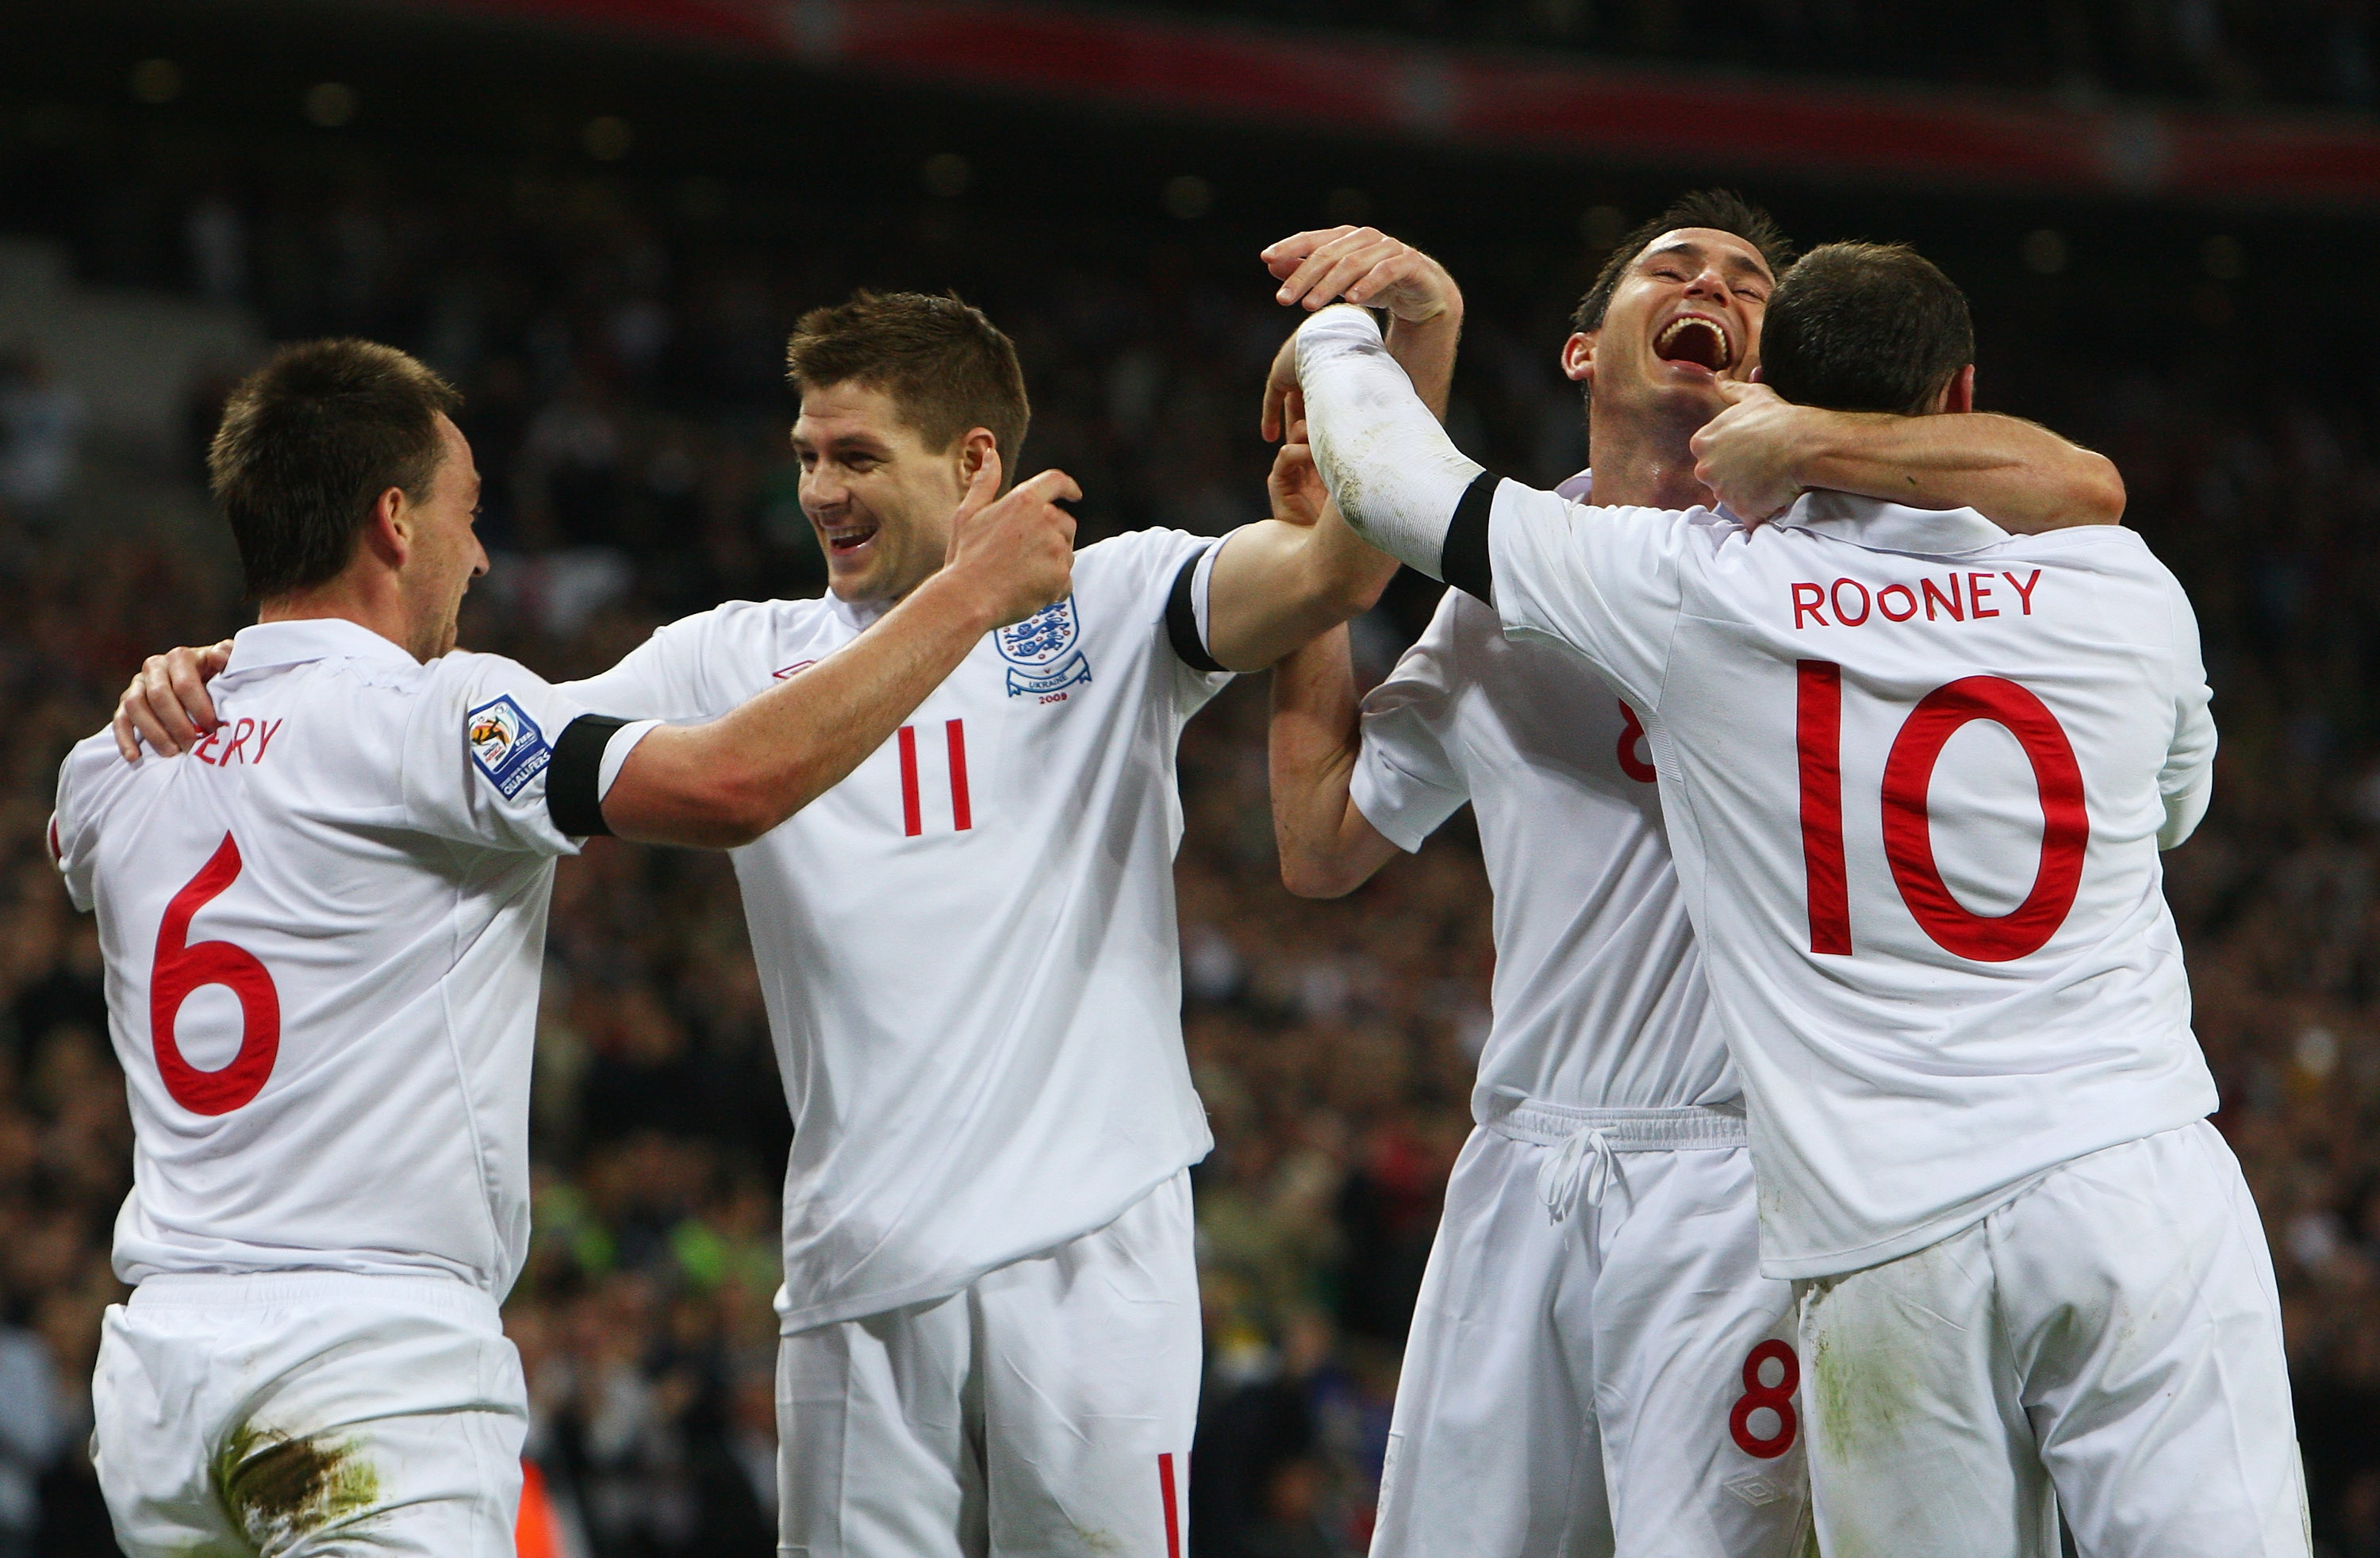 LONDON - APRIL 01:  John Terry (L) of England celebrates scoring his goal with Steven Gerrard, Frank Lampard and Wayne Rooney during the FIFA 2010 World Cup Group 6 Qualifying match between England and Ukraine at Wembley Stadium on April 1, 2009 in London